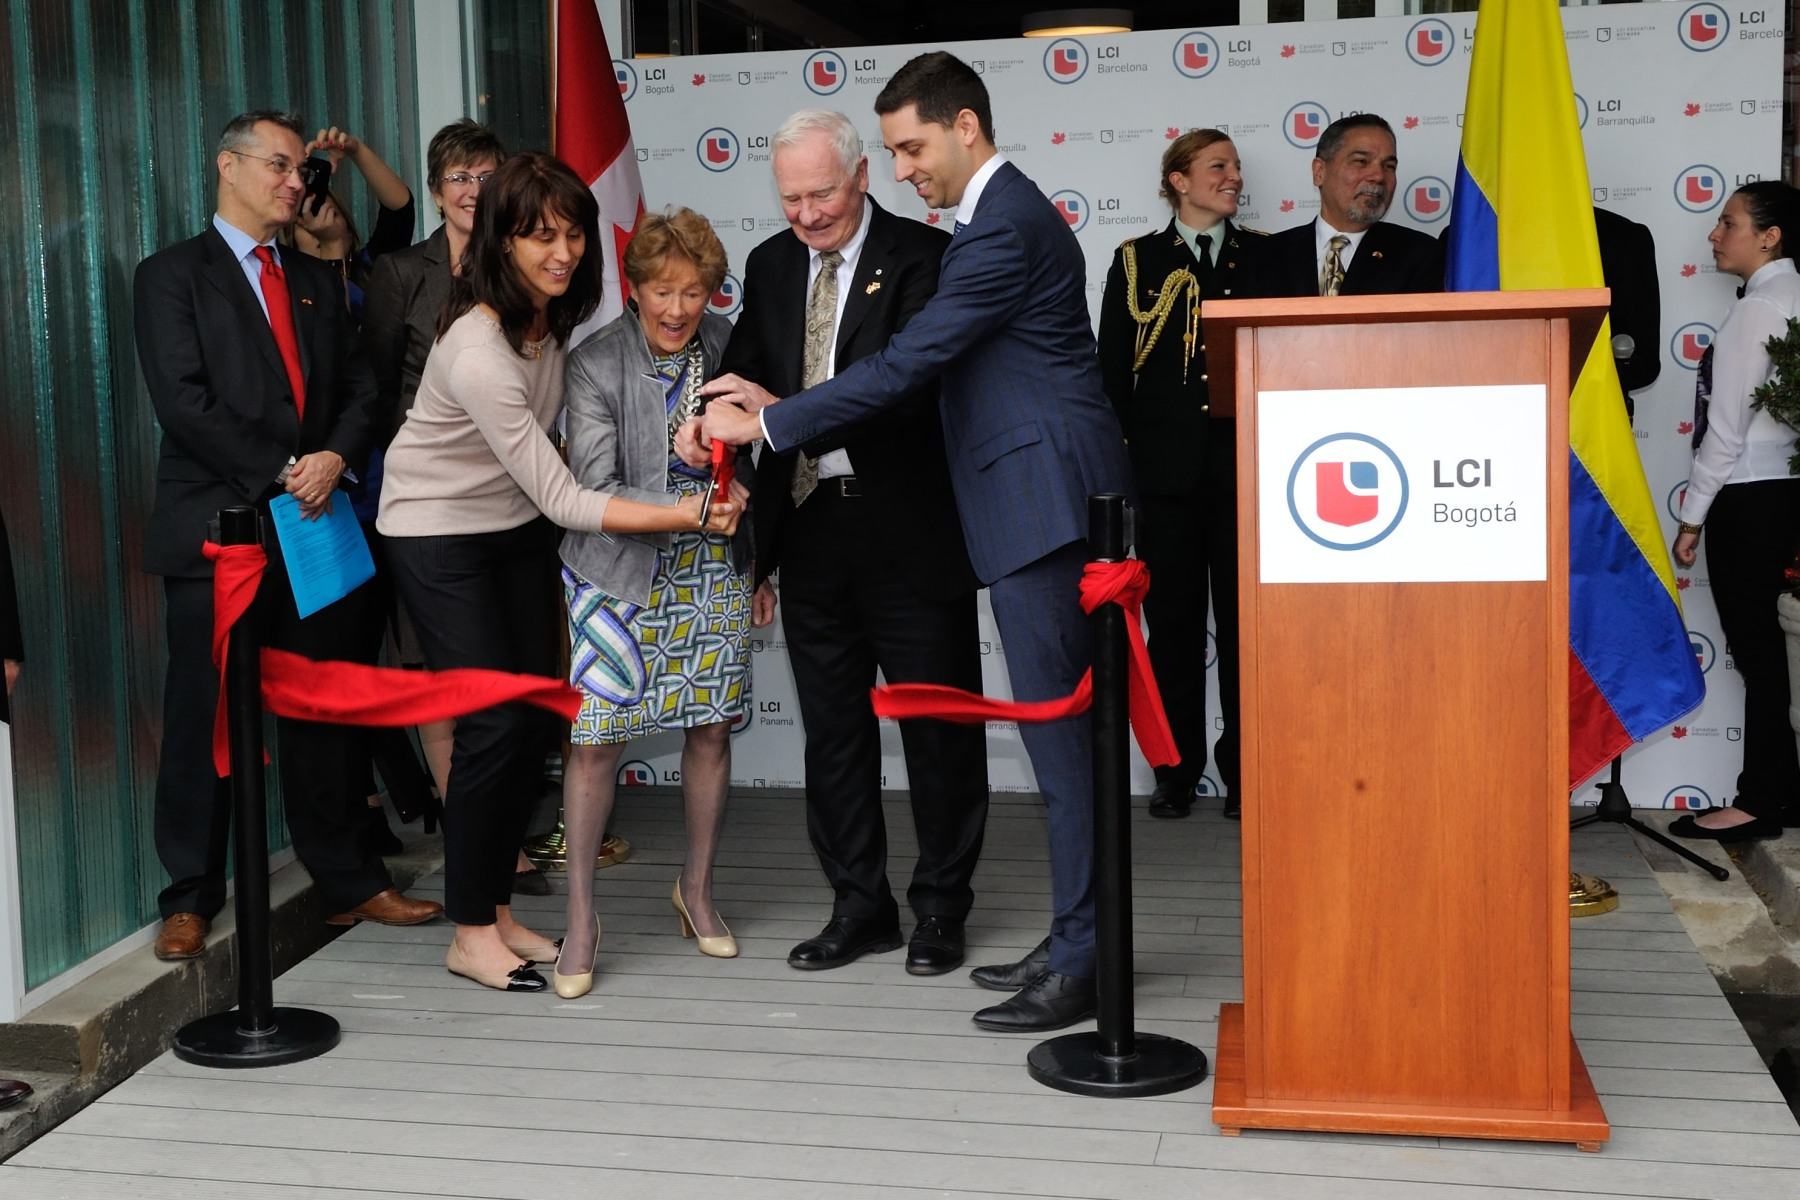 Their Excellencies, joined by Gina Parody, Minister of Education in Colombia, and Claude Marchand, President of LaSalle College International Education, inaugurated the new LaSalle College campus in Bogotá, the only private Canadian educational institution with direct investment in Colombia.